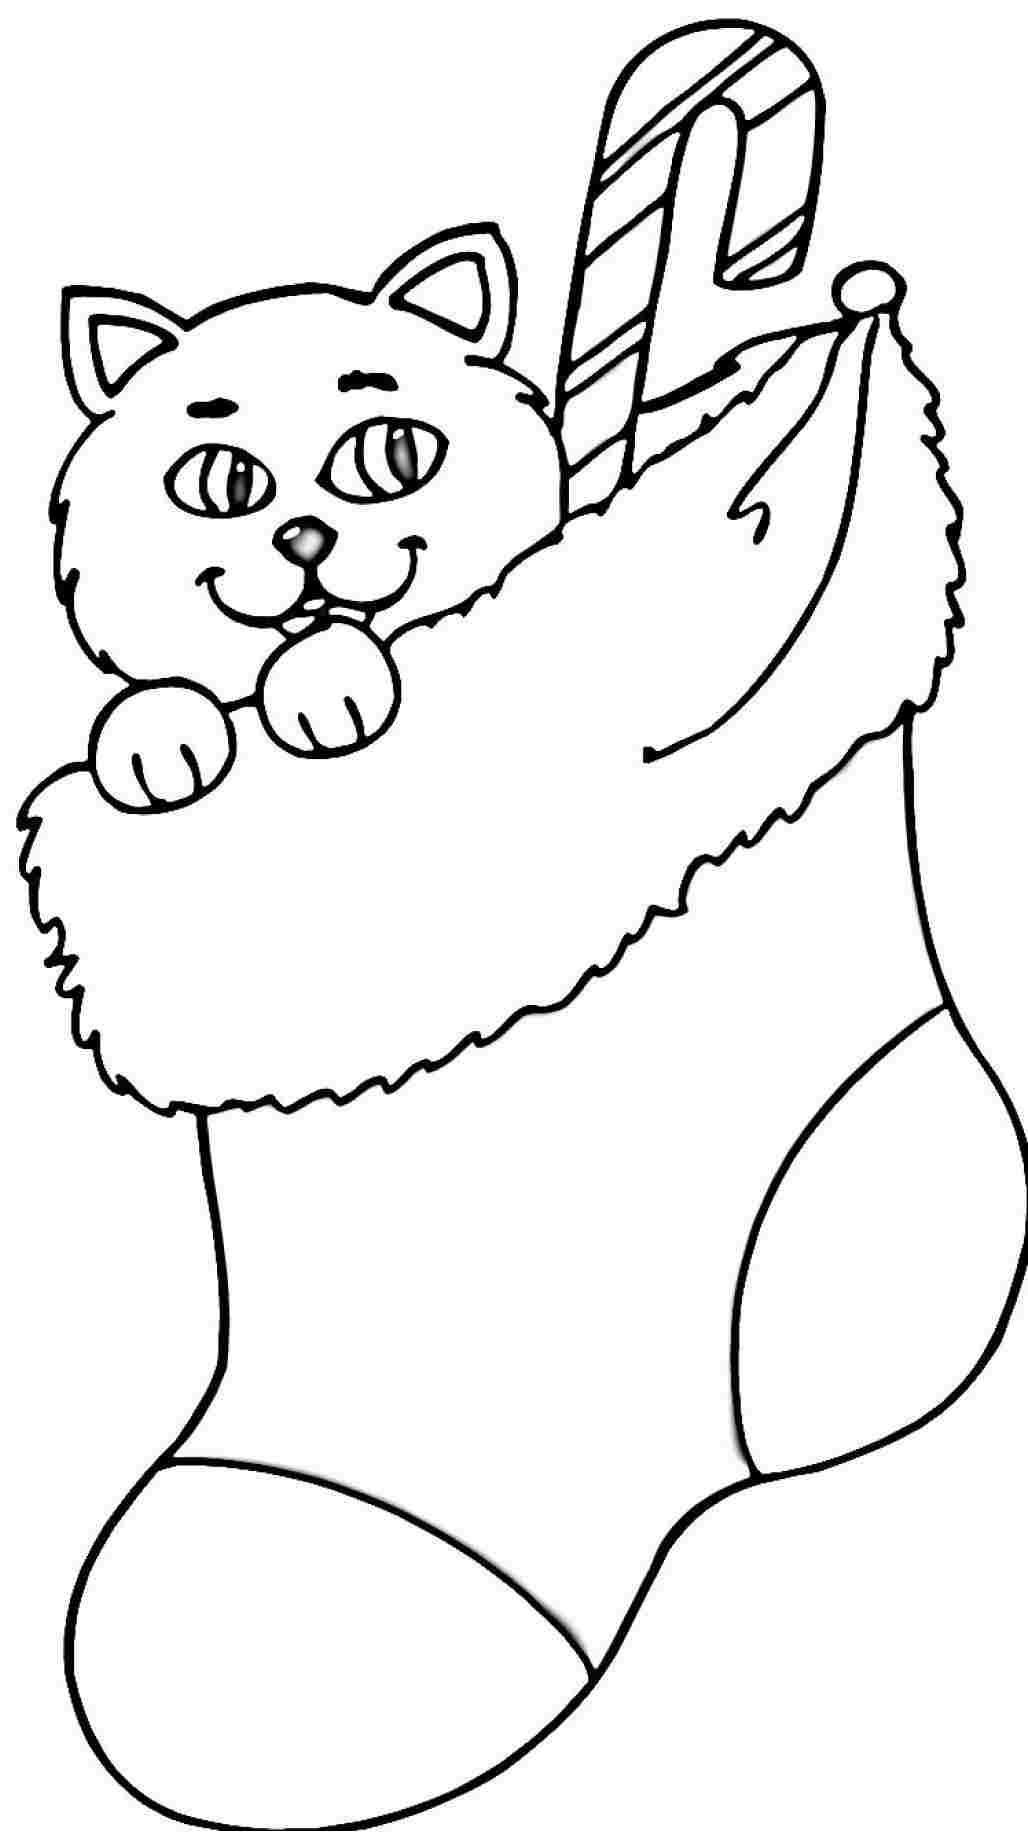 Stocking Printable Coloring Pages  Printable Christmas Stocking Coloring Pages Coloring Home